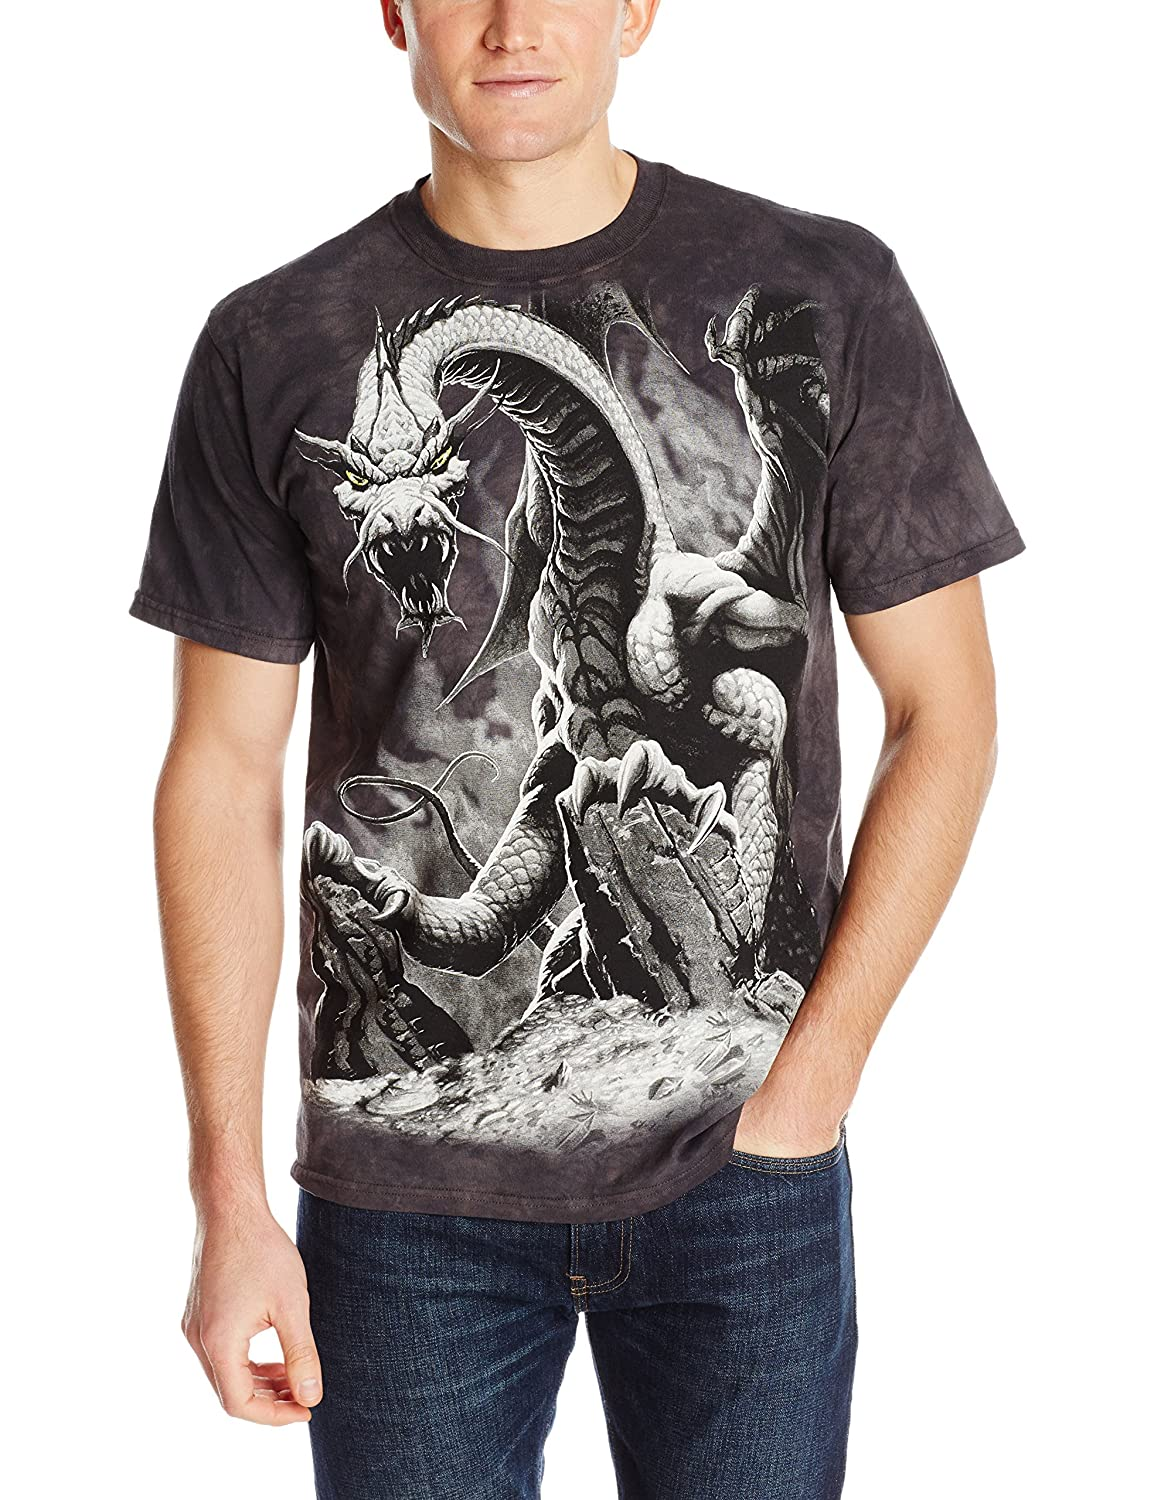 Home clothing mens clothing dragon furnace longsleeve t - Home Clothing Mens Clothing Dragon Furnace Longsleeve T 14